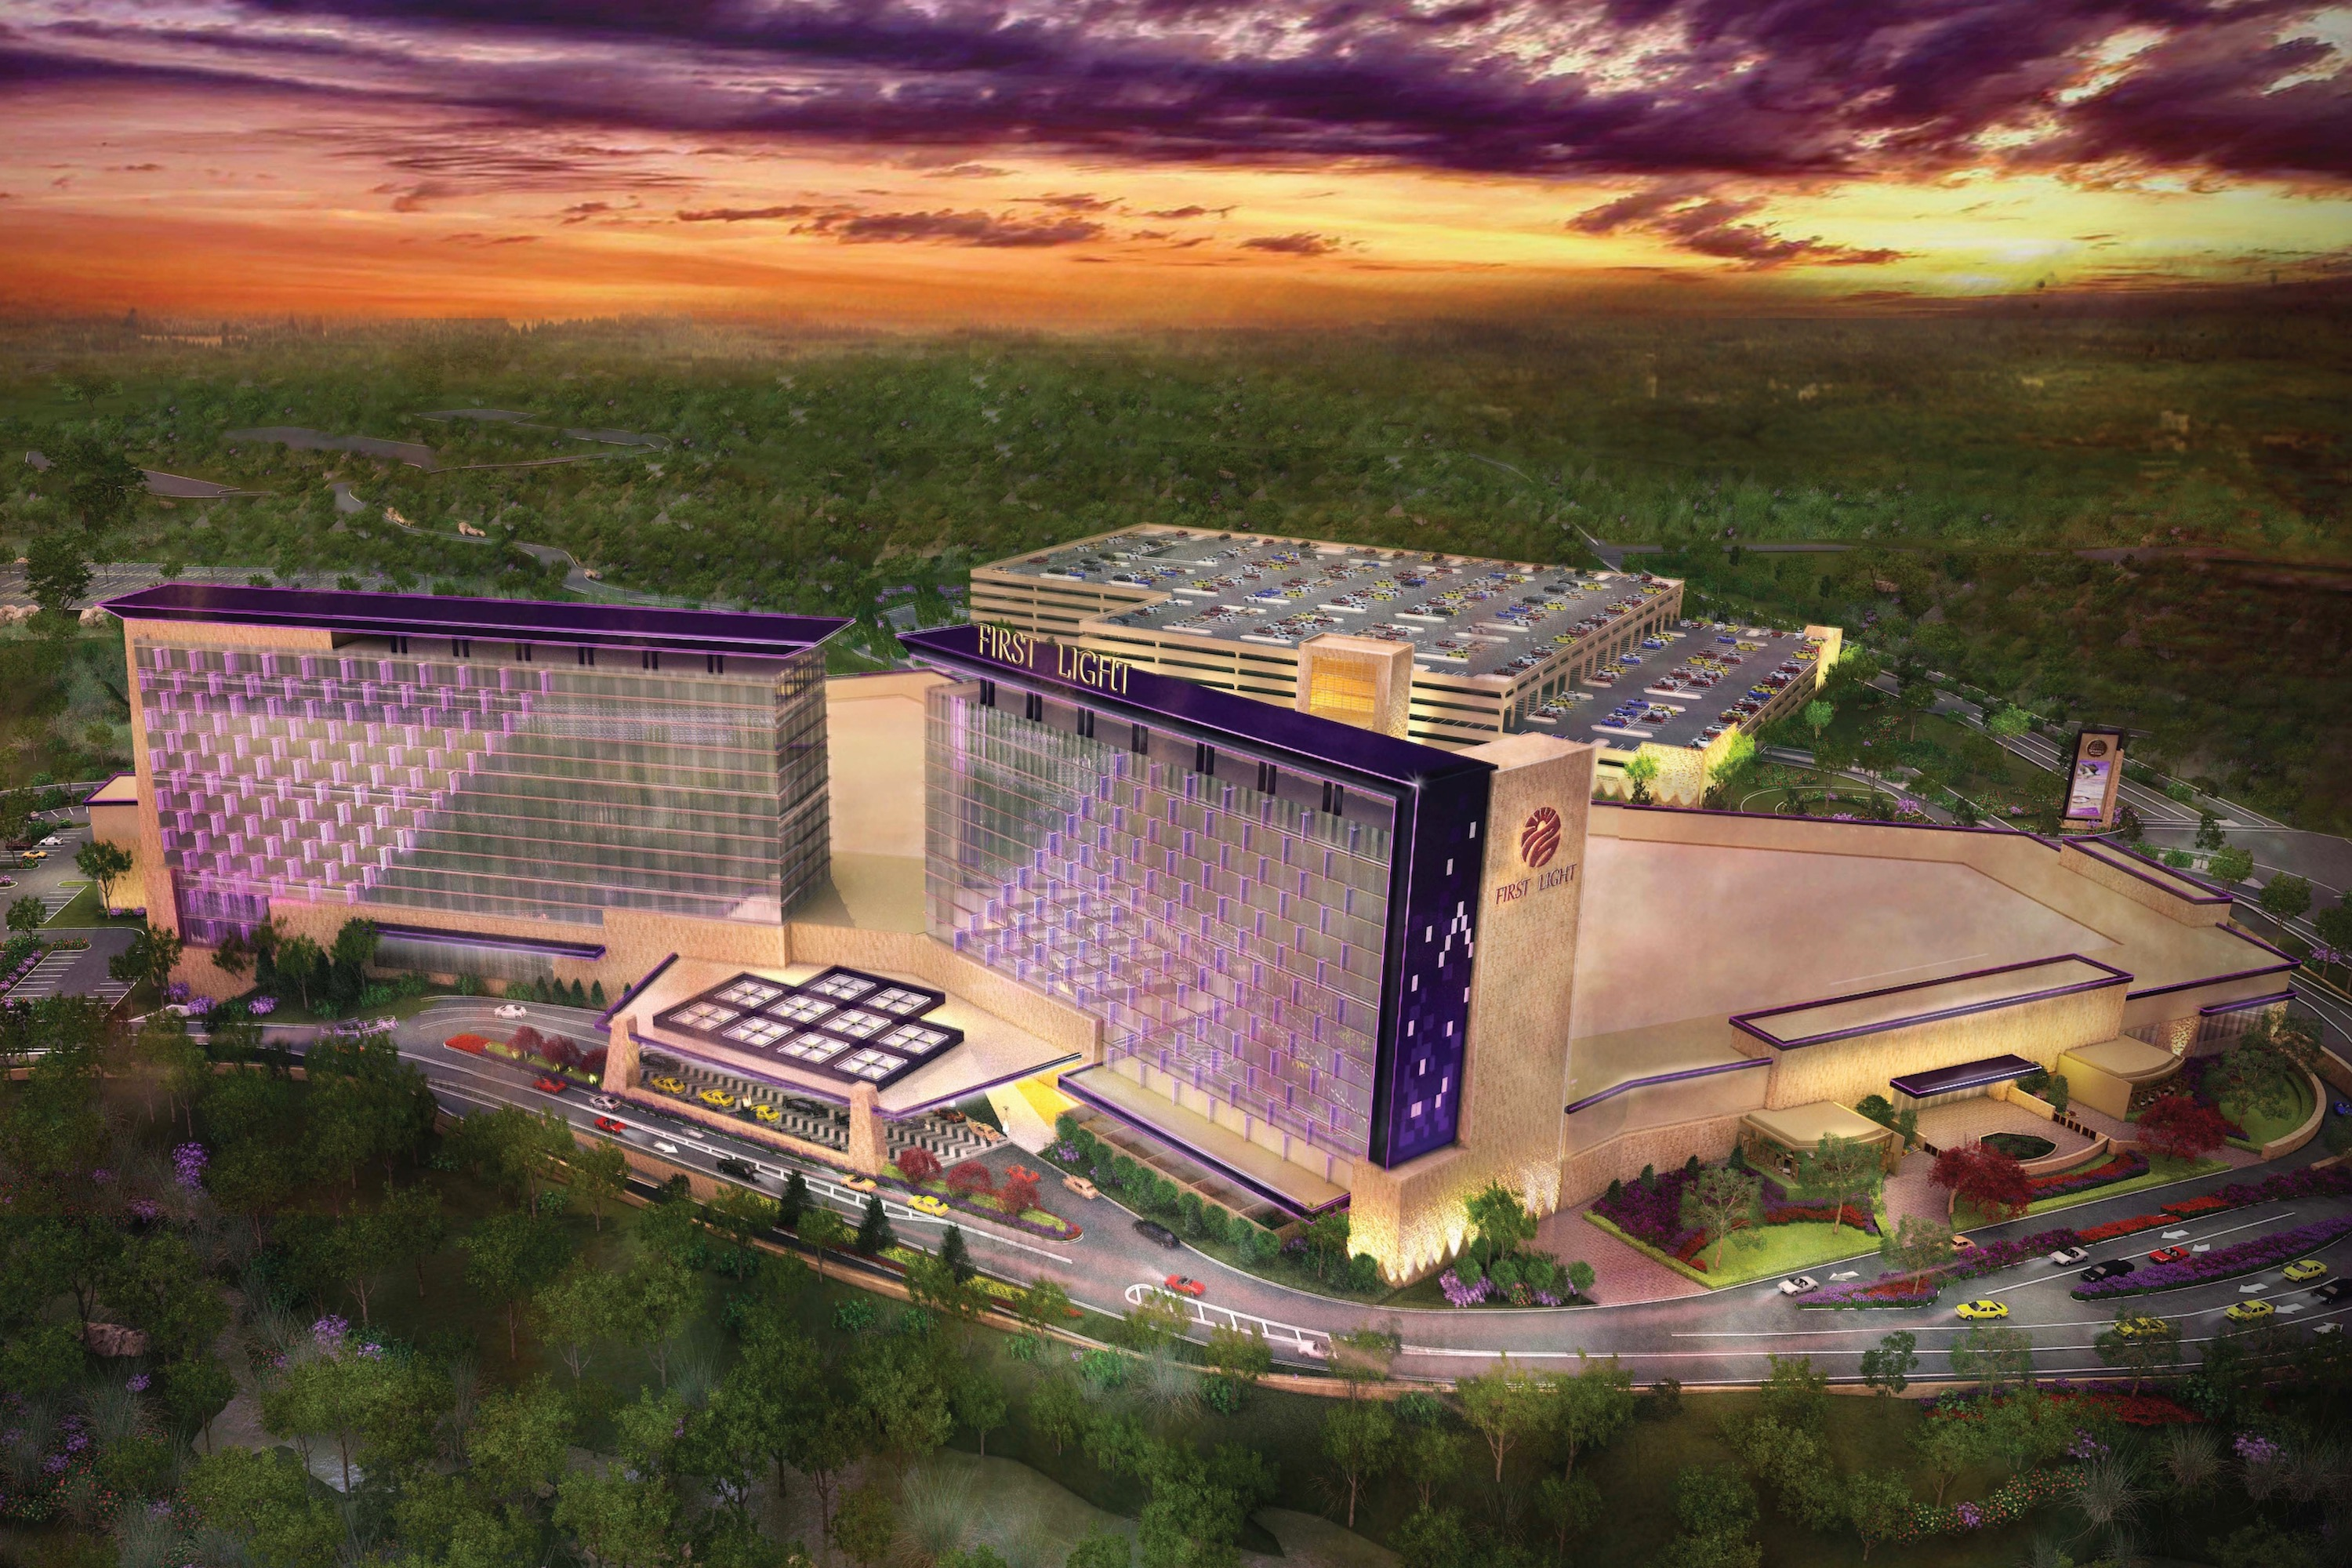 Mashpee Wampanoag Tribe faces opposition to homelands legislation